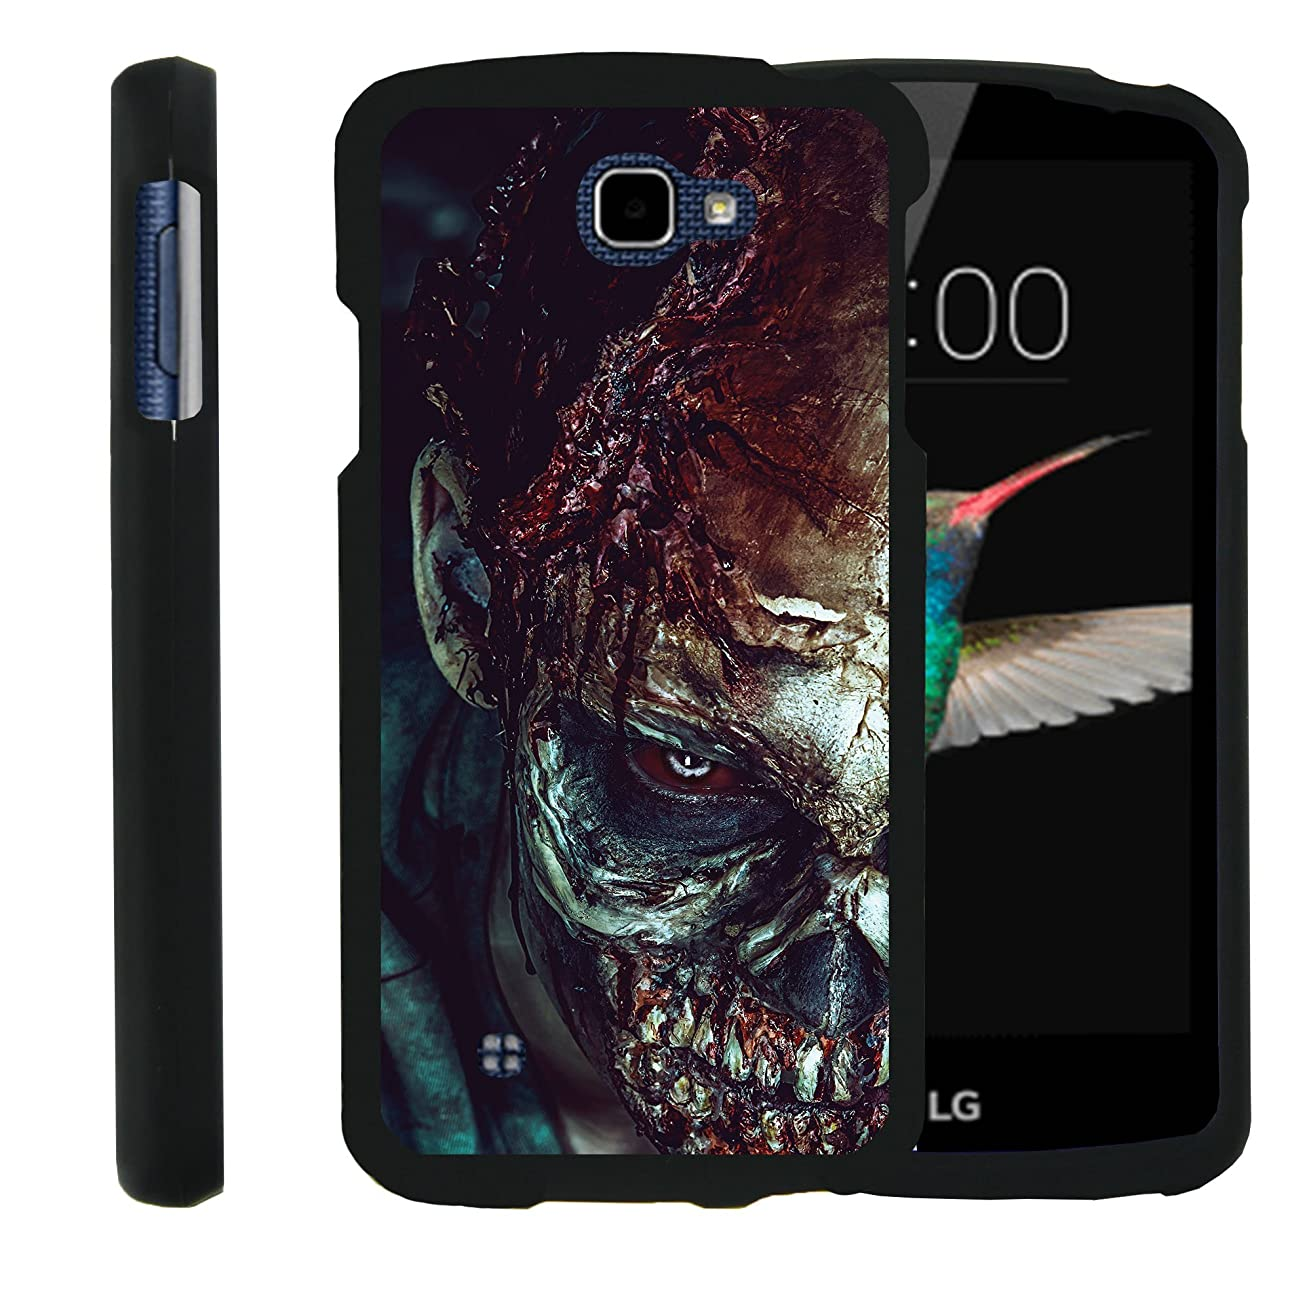 MINITURTLE Case Compatible w/LG Optimus Zone 3,LG Spree,LG K4,LG Rebel Phone Case, Perfect Slim Fit Snap on Hard Cover Haunted Design Close up Zombie